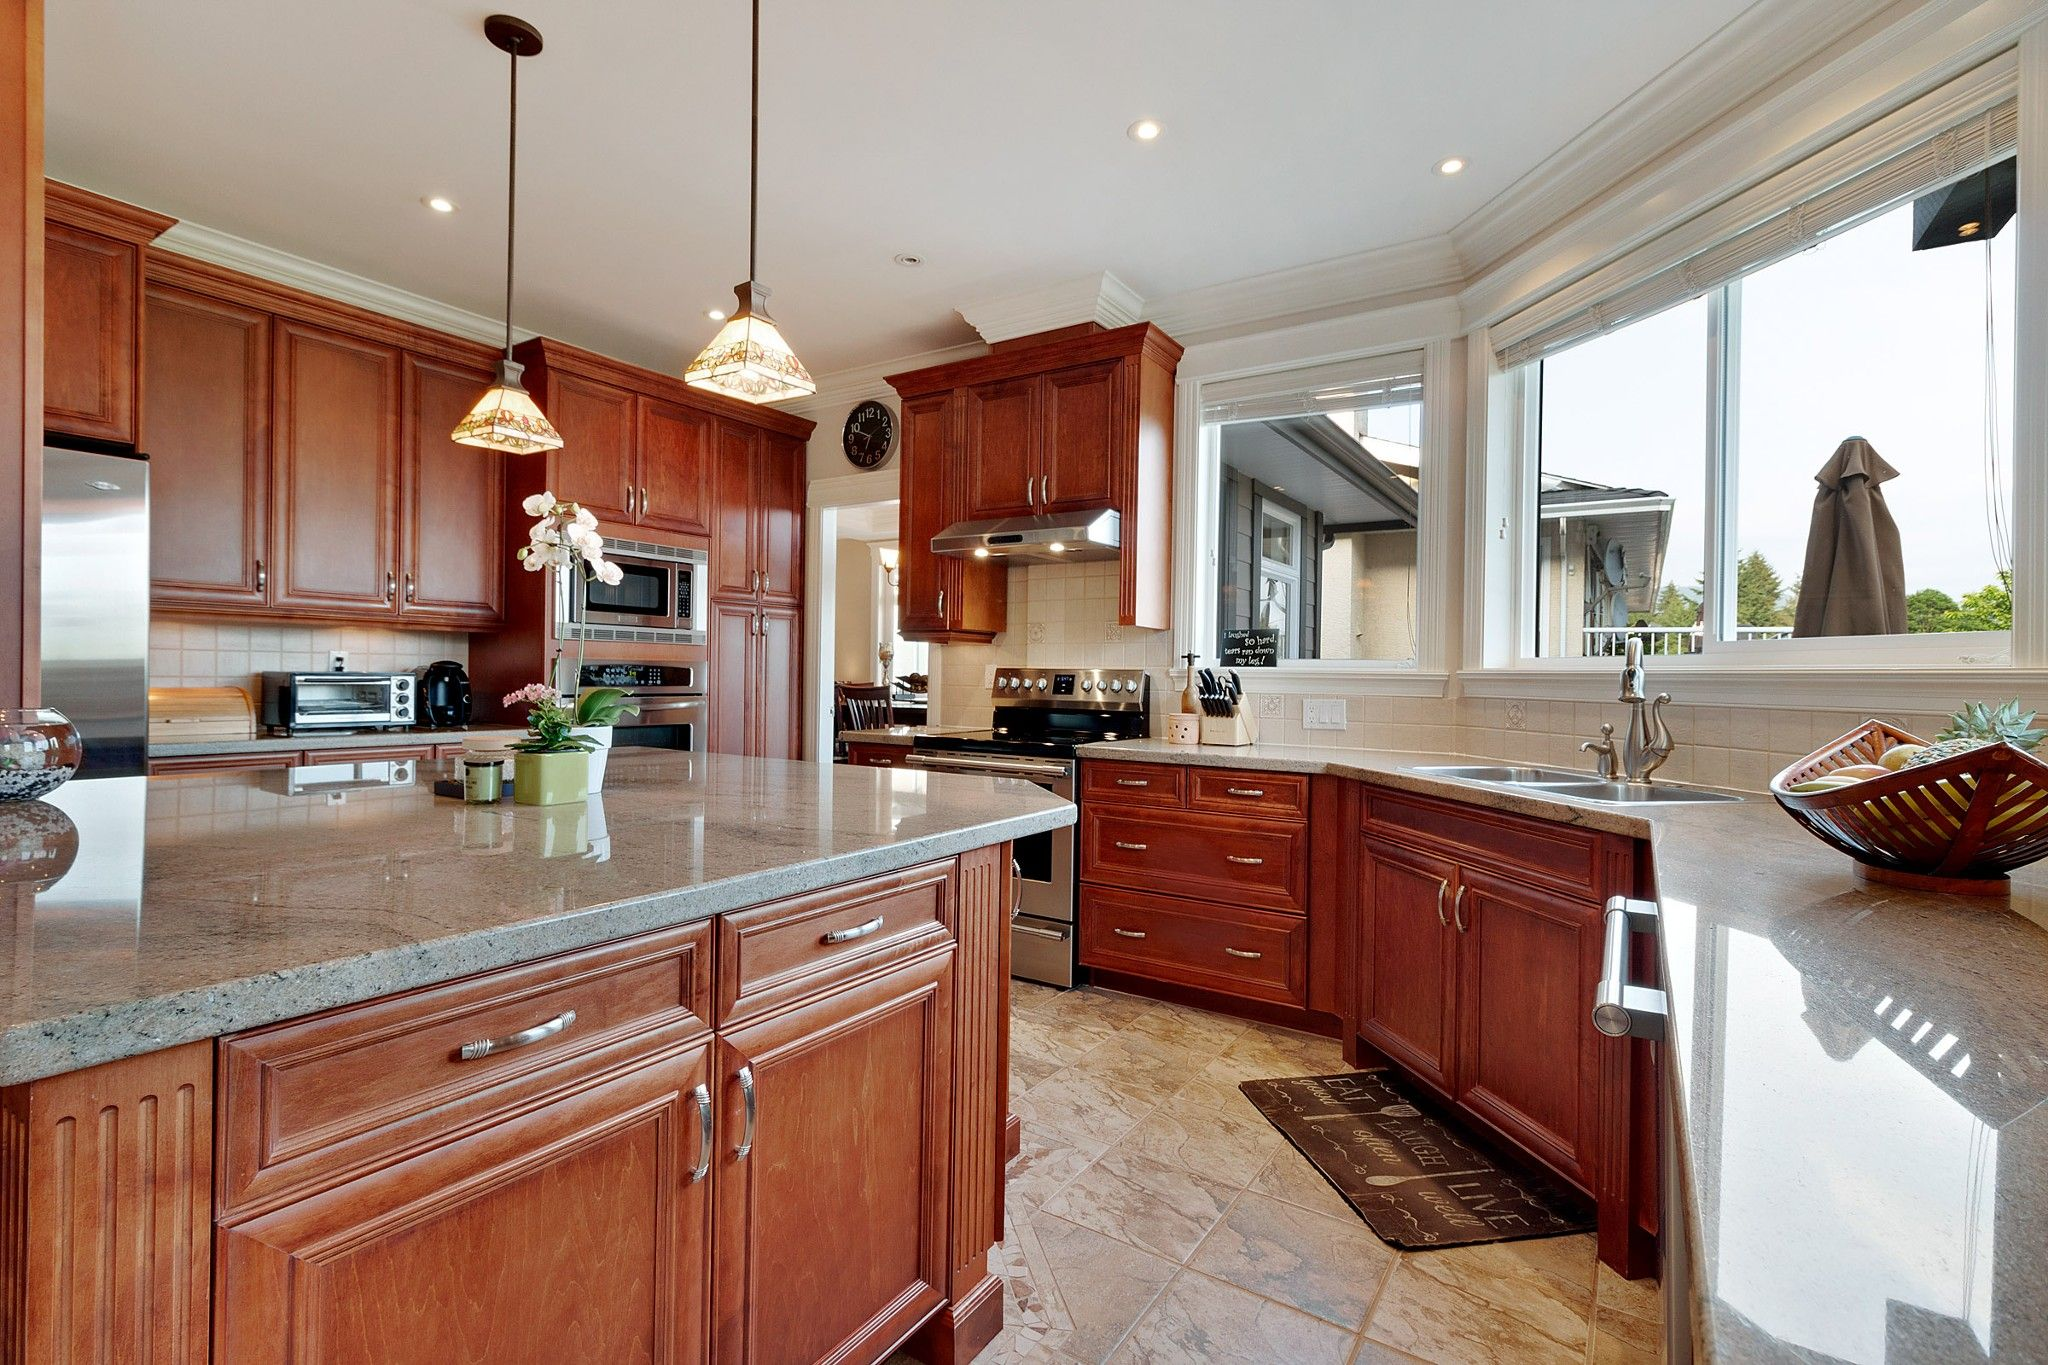 Photo 9: Photos: 1237 DYCK Road in North Vancouver: Lynn Valley House for sale : MLS®# R2374868